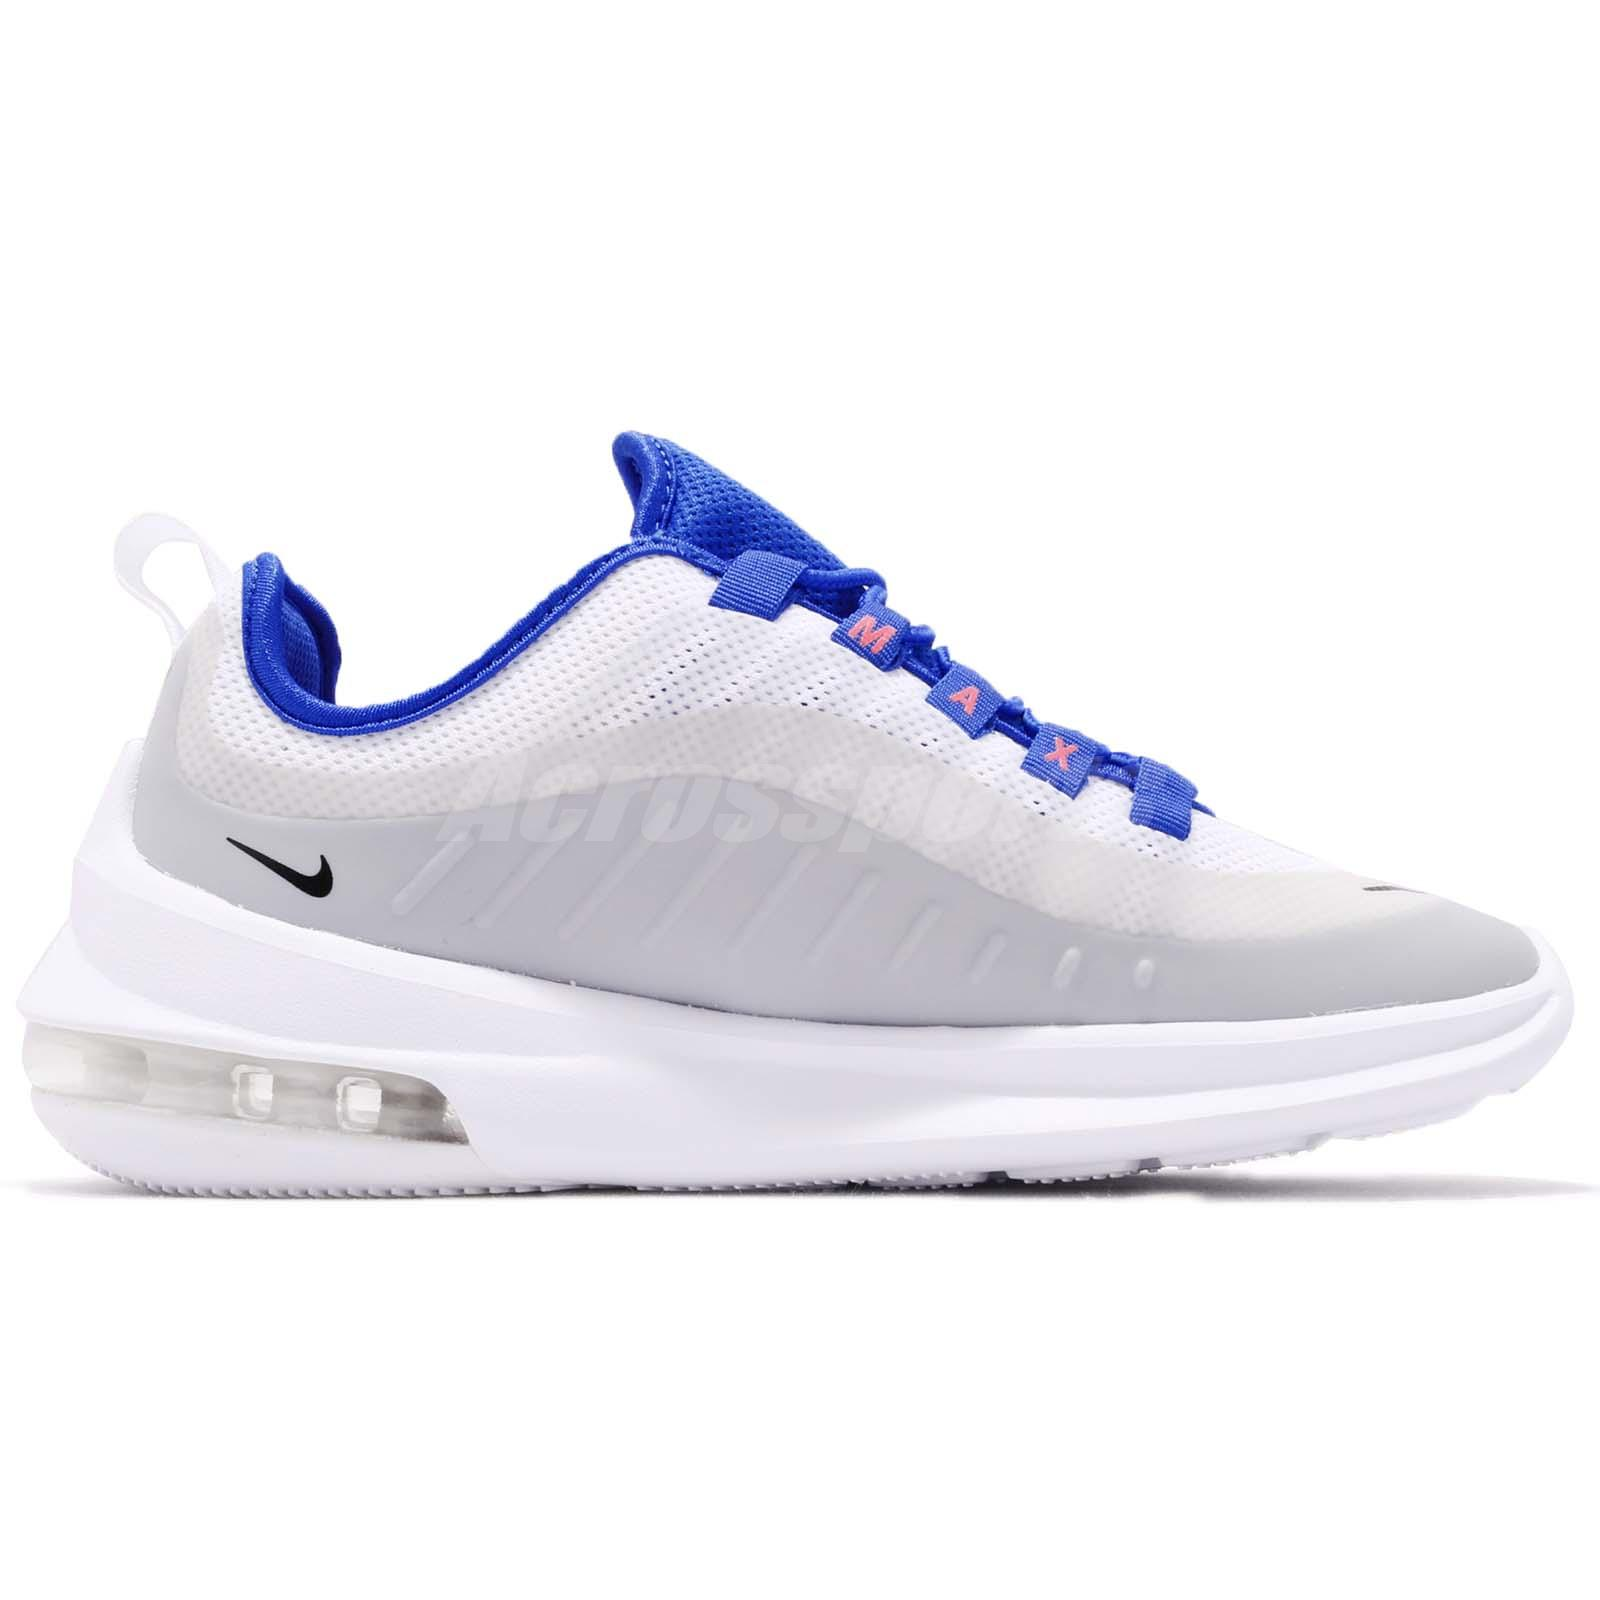 Wmns Nike Air Max Axis White Racer Blue Women Running Shoes Sneakers AA2168-101